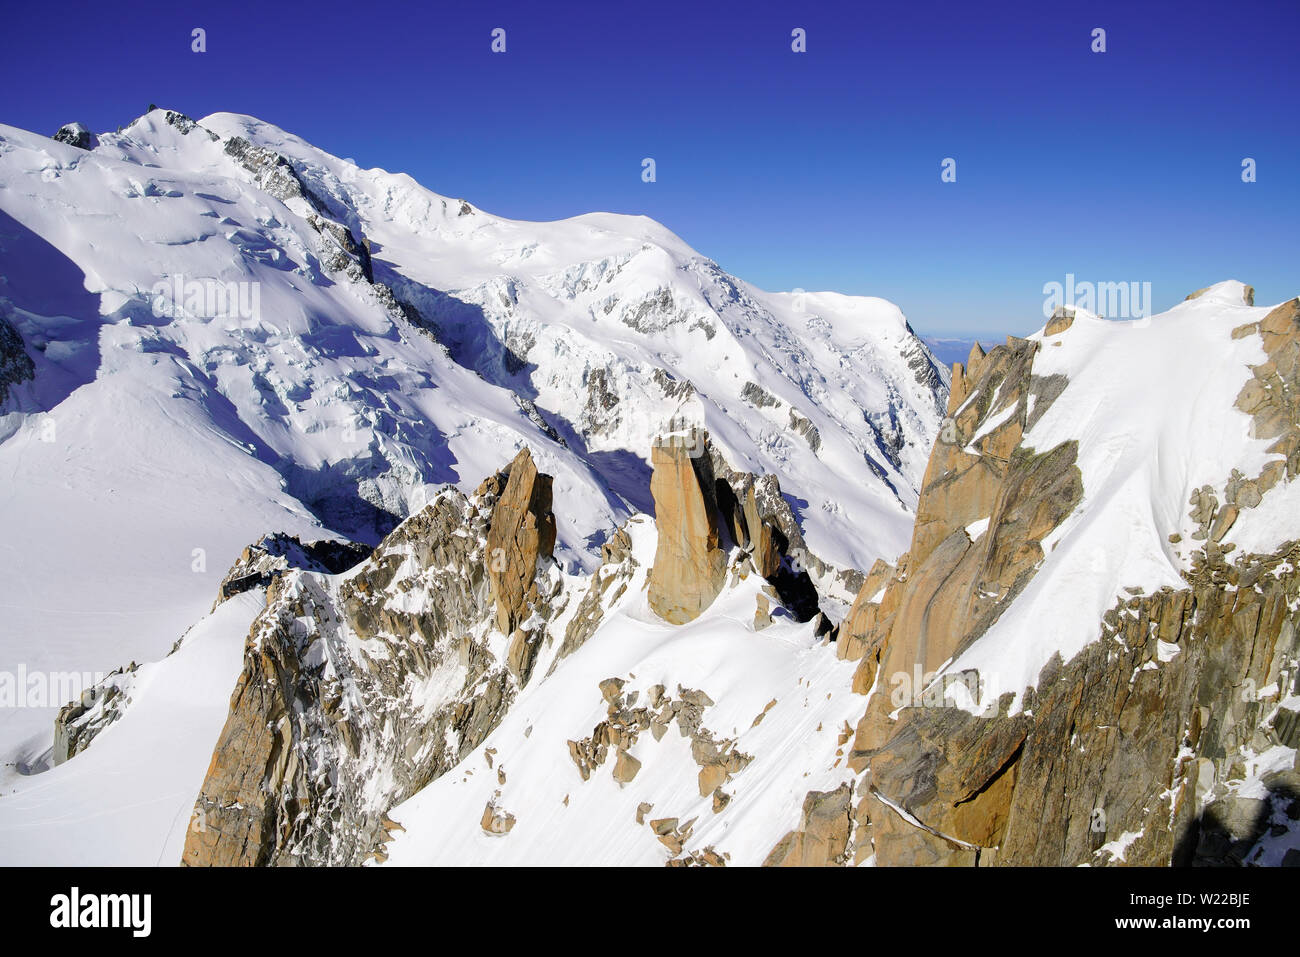 View of Mont Blanc massif in the French Alps above Chamonix. France, From Aiguille Du Midi cable car station. - Stock Image